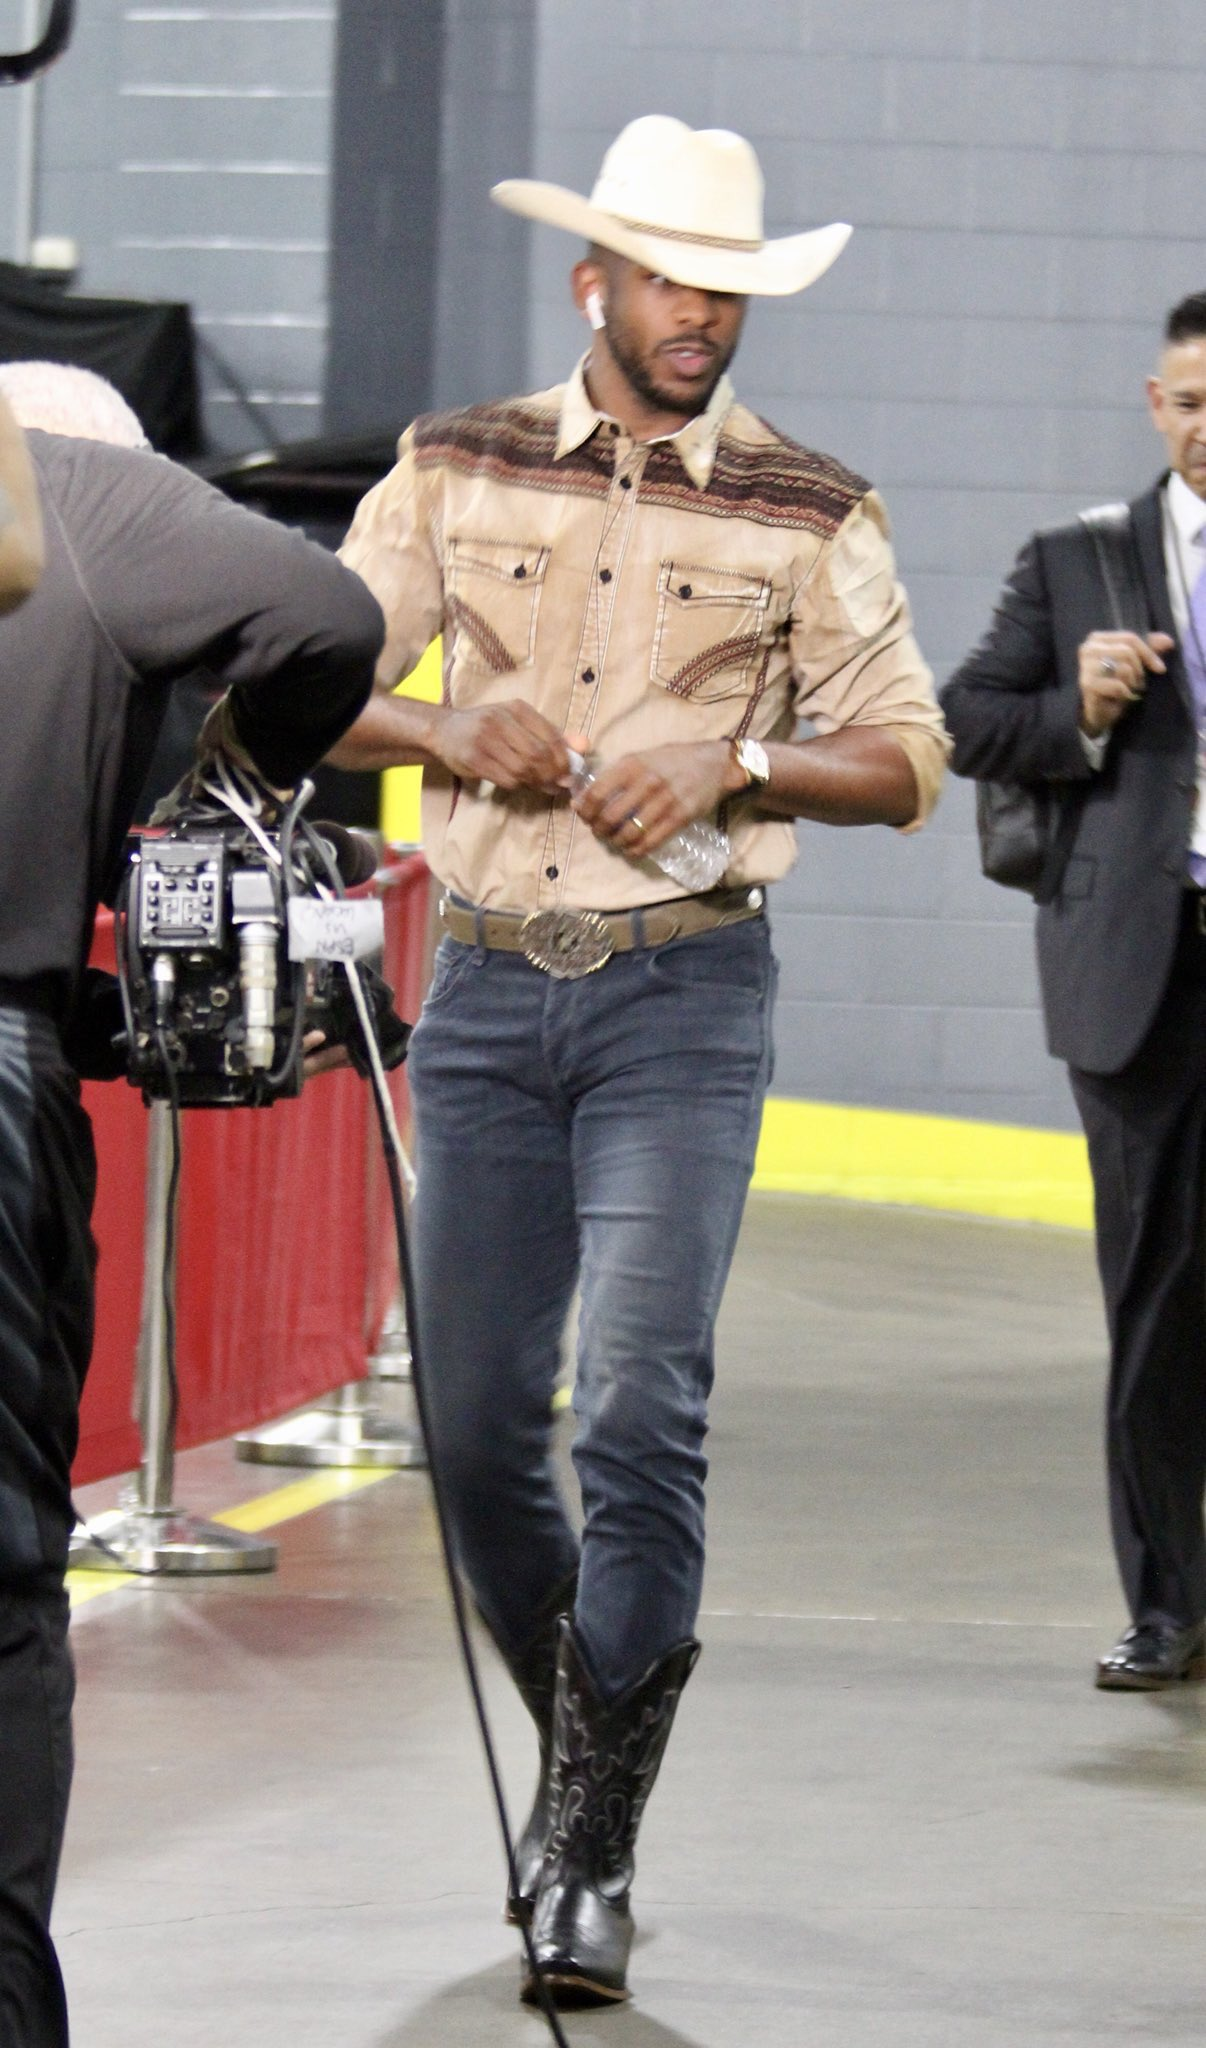 Kolor Magazine Incase You Missed It- Dressing Up As A Cowboy Is A Ting In 2018 Chris Paul.jpg